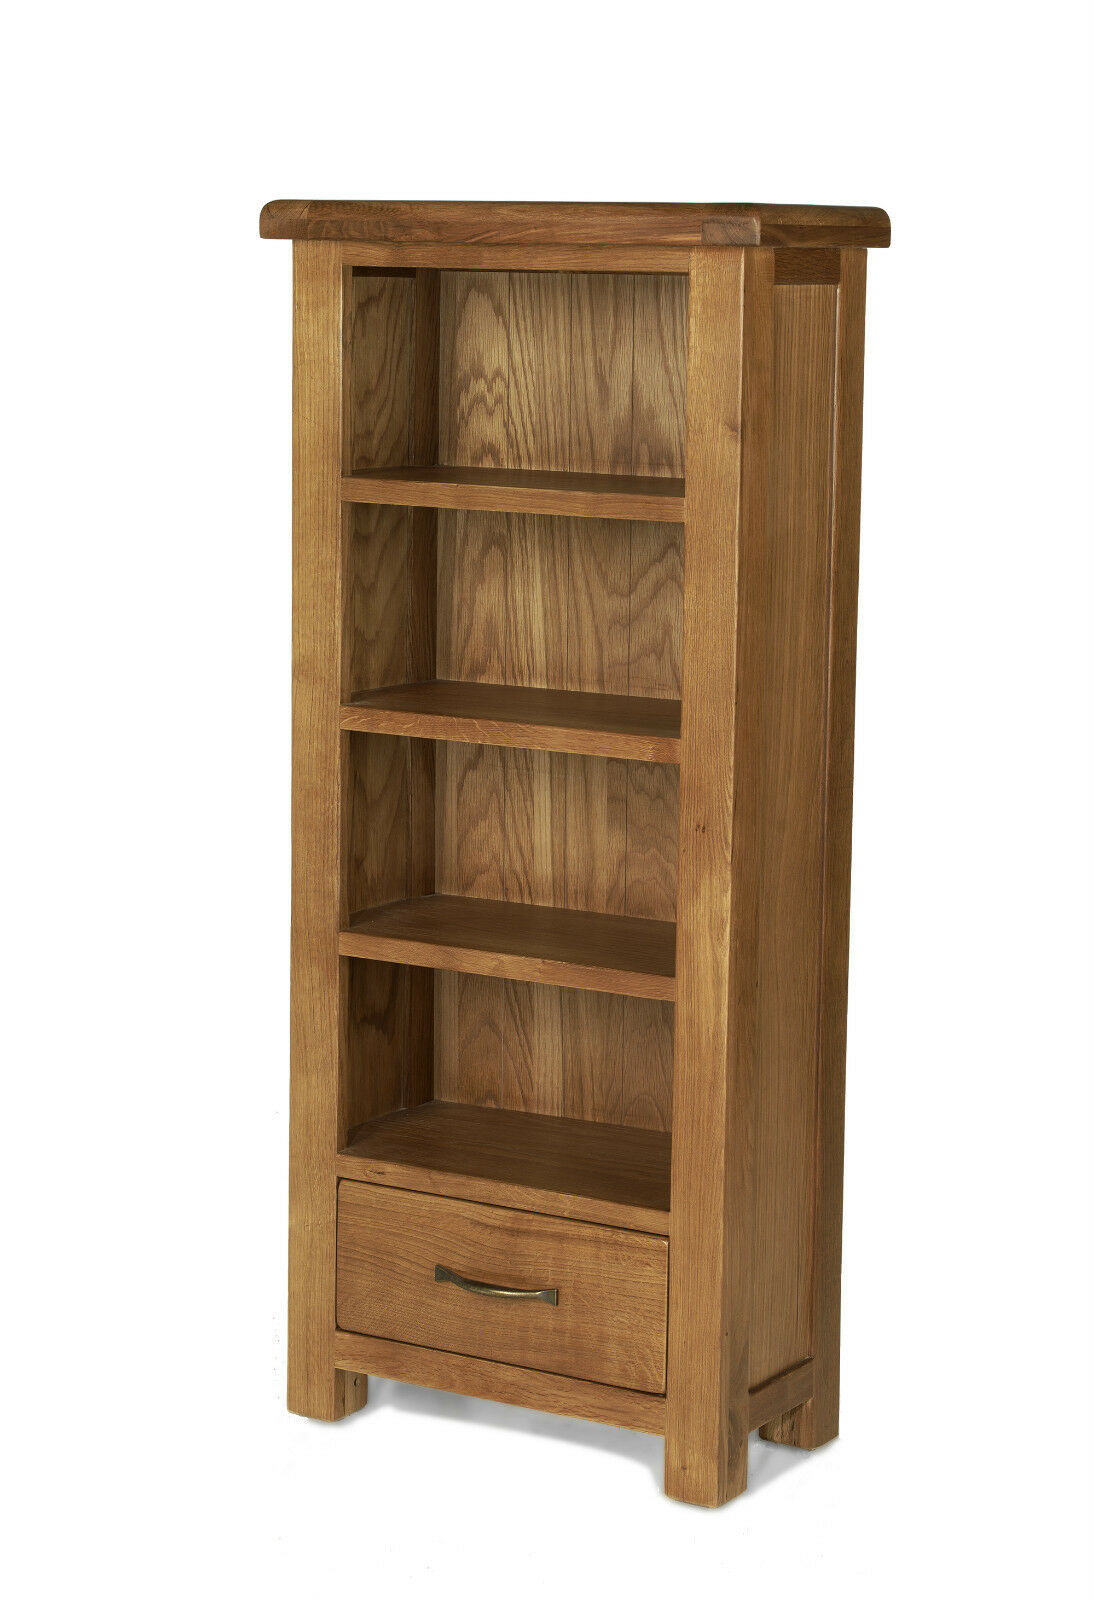 Marvelous photograph of  CHUNKY WOOD RUSTIC OAK NARROW OPEN BOOKCASE CD DVD CABINET eBay with #482F18 color and 1094x1600 pixels